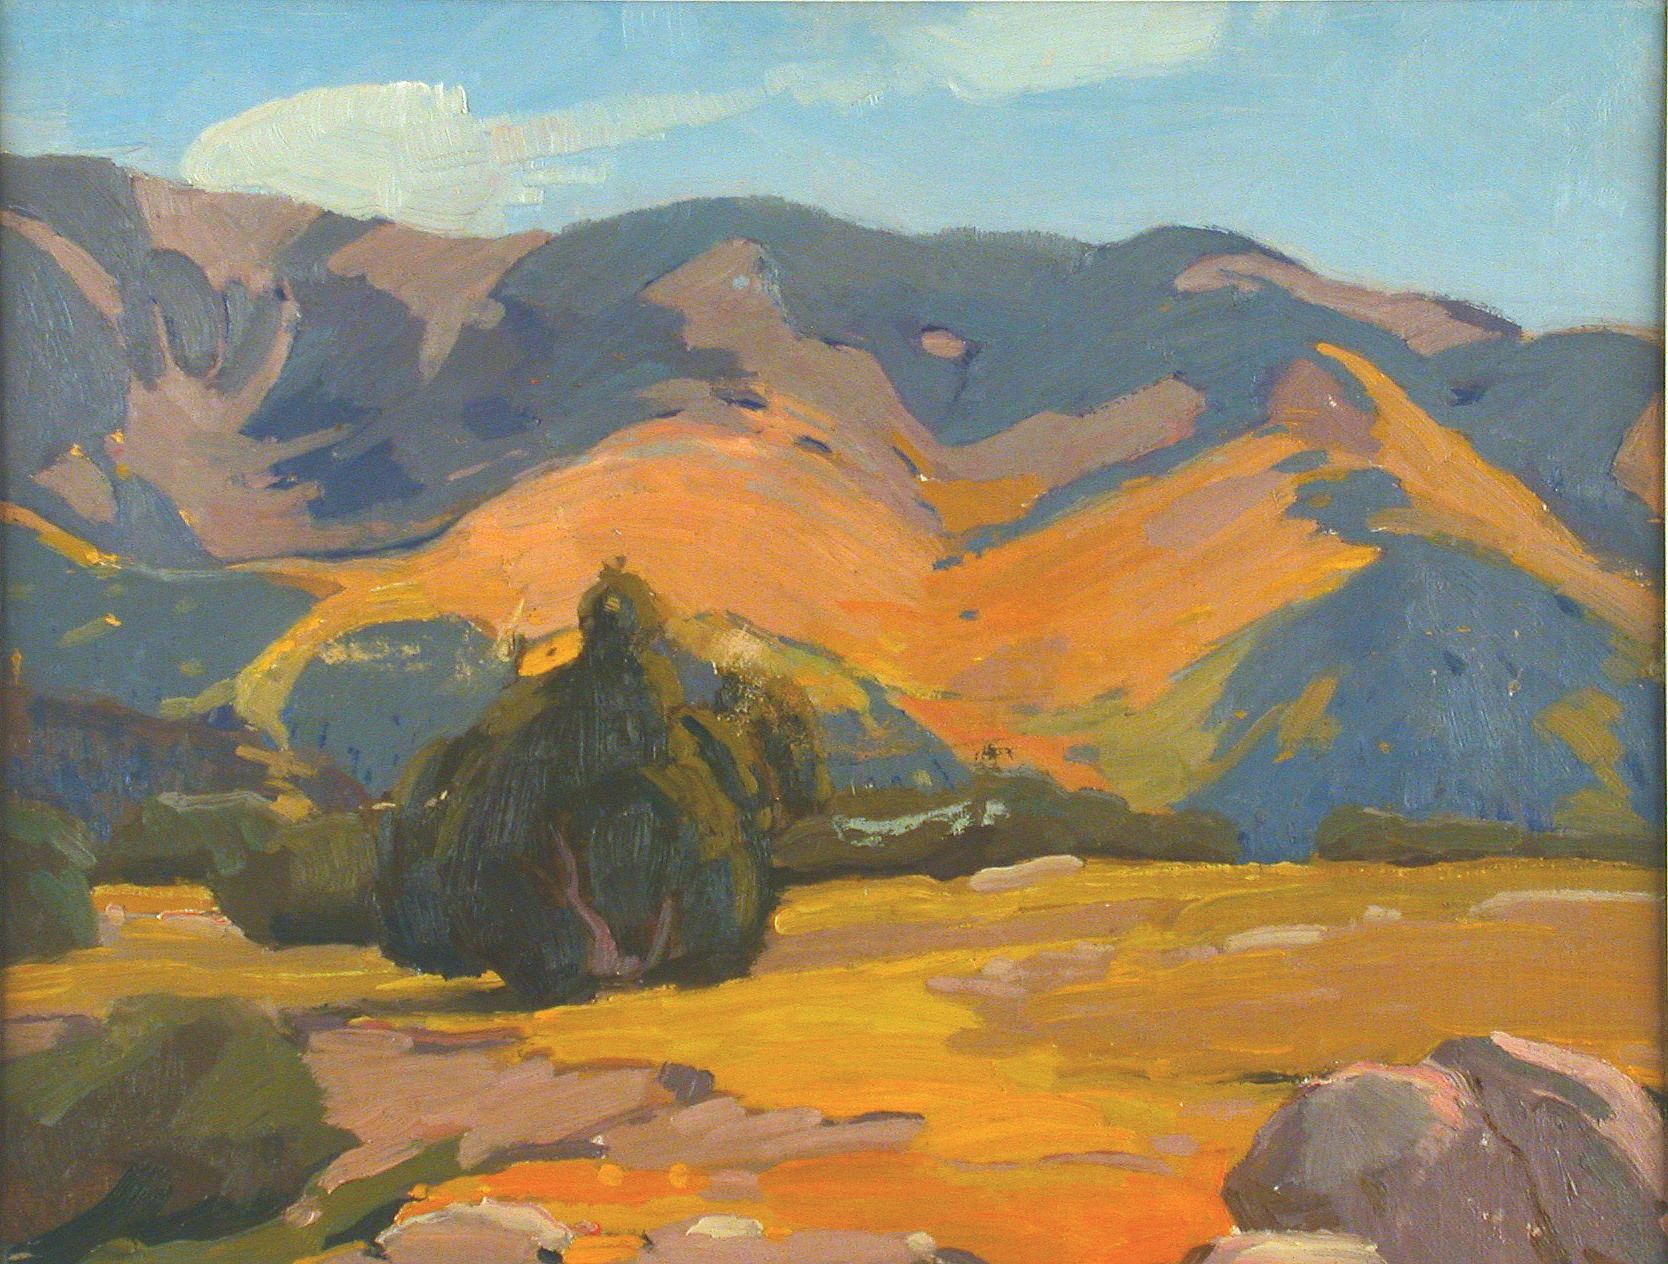 Untitled, not dated